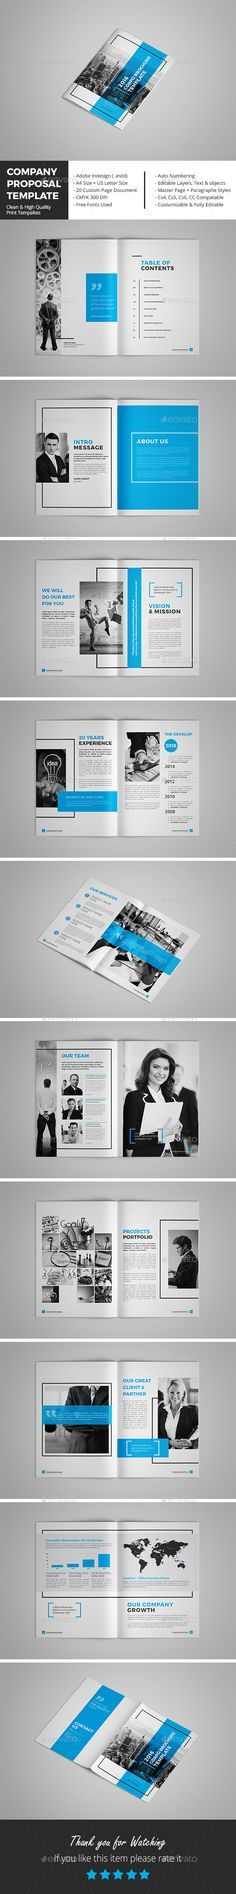 Company Proposal Template Pinterest Proposal Templates Indesign